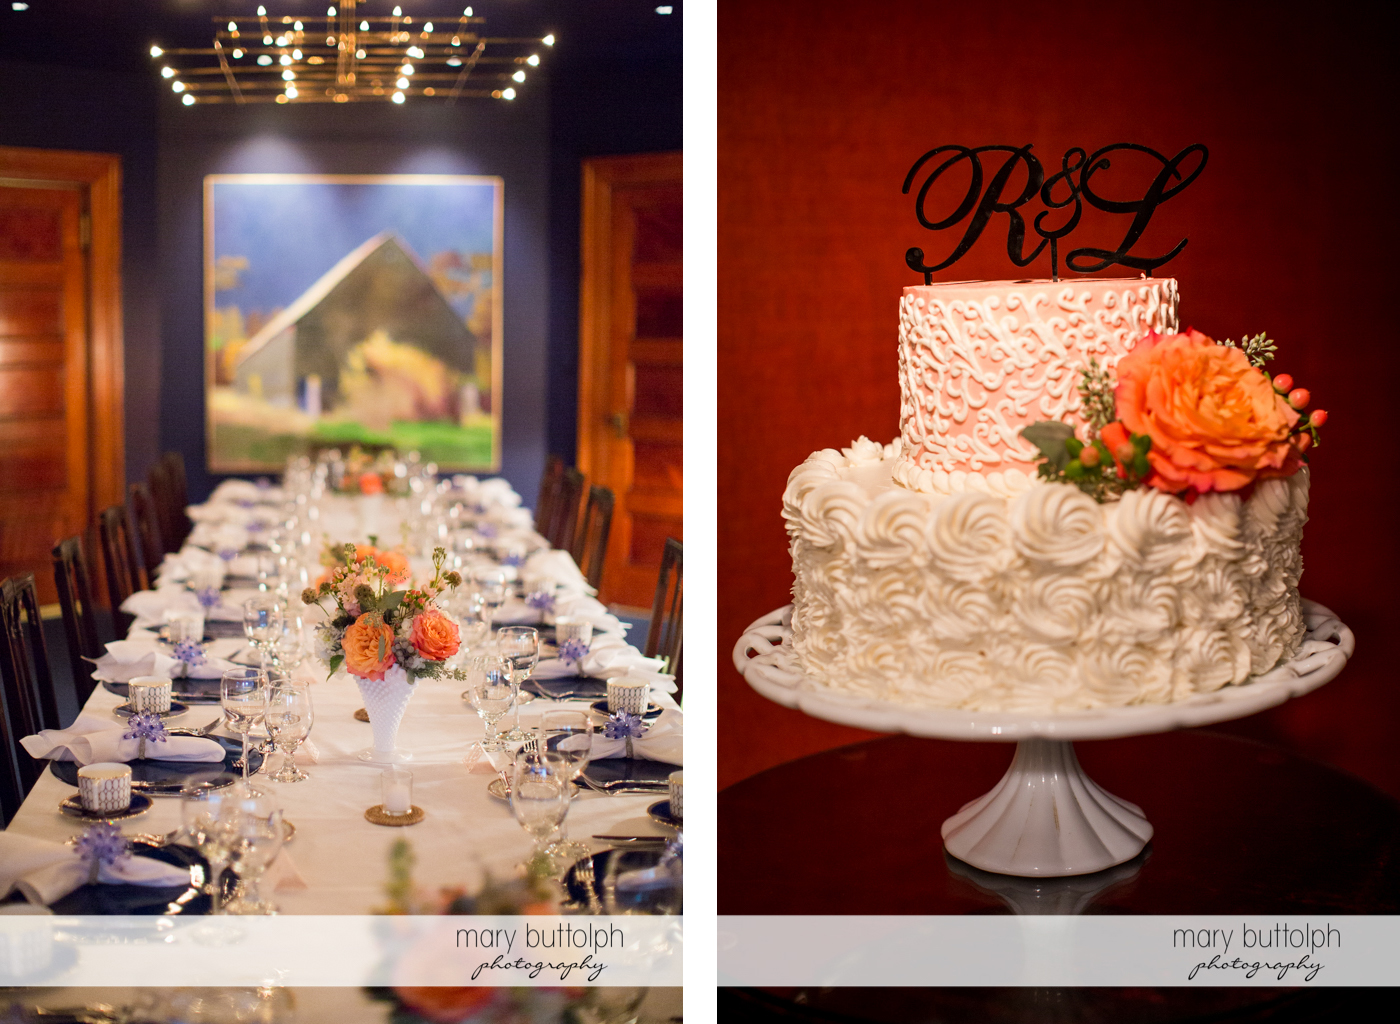 The wedding venue and the couple's wedding cake at Rowland House Wedding